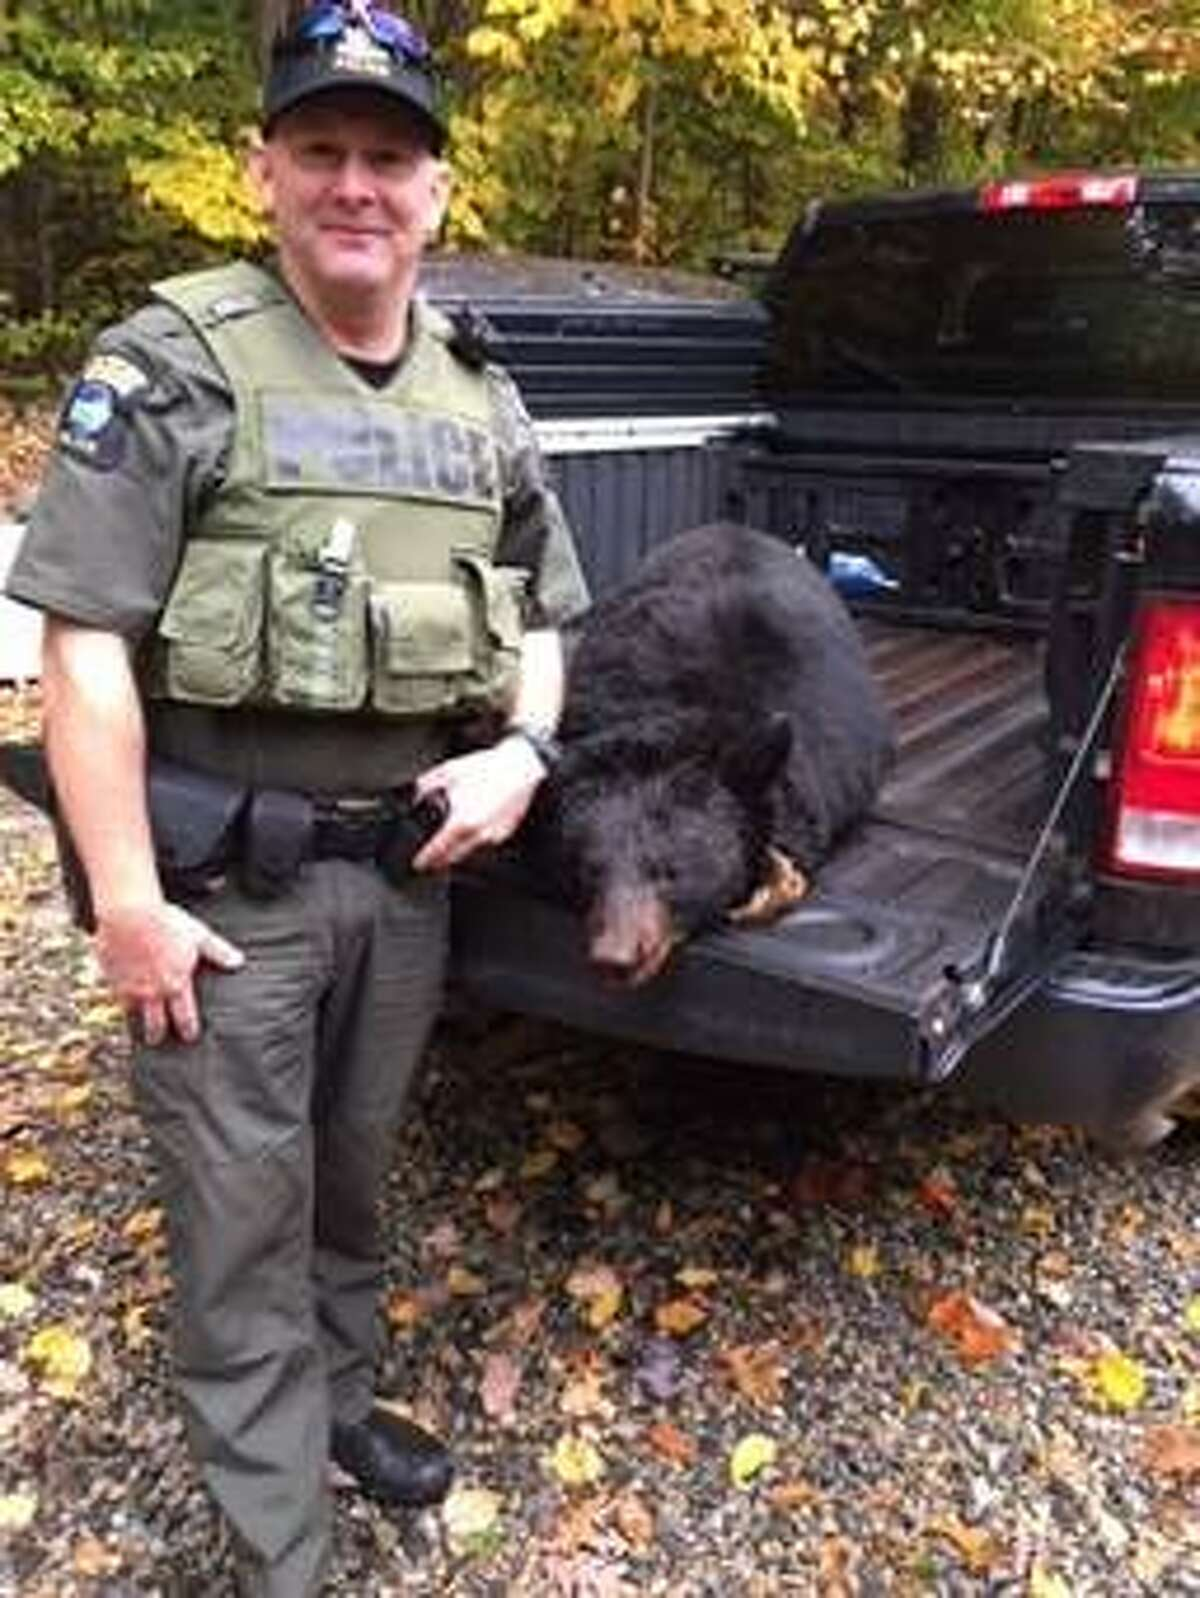 State Environmental Conservation Officer George LaPoint stands with the seized remains of an illegally hunted bear on Oct. 12, 2018, in Stony Creek, Warren County, N.Y.